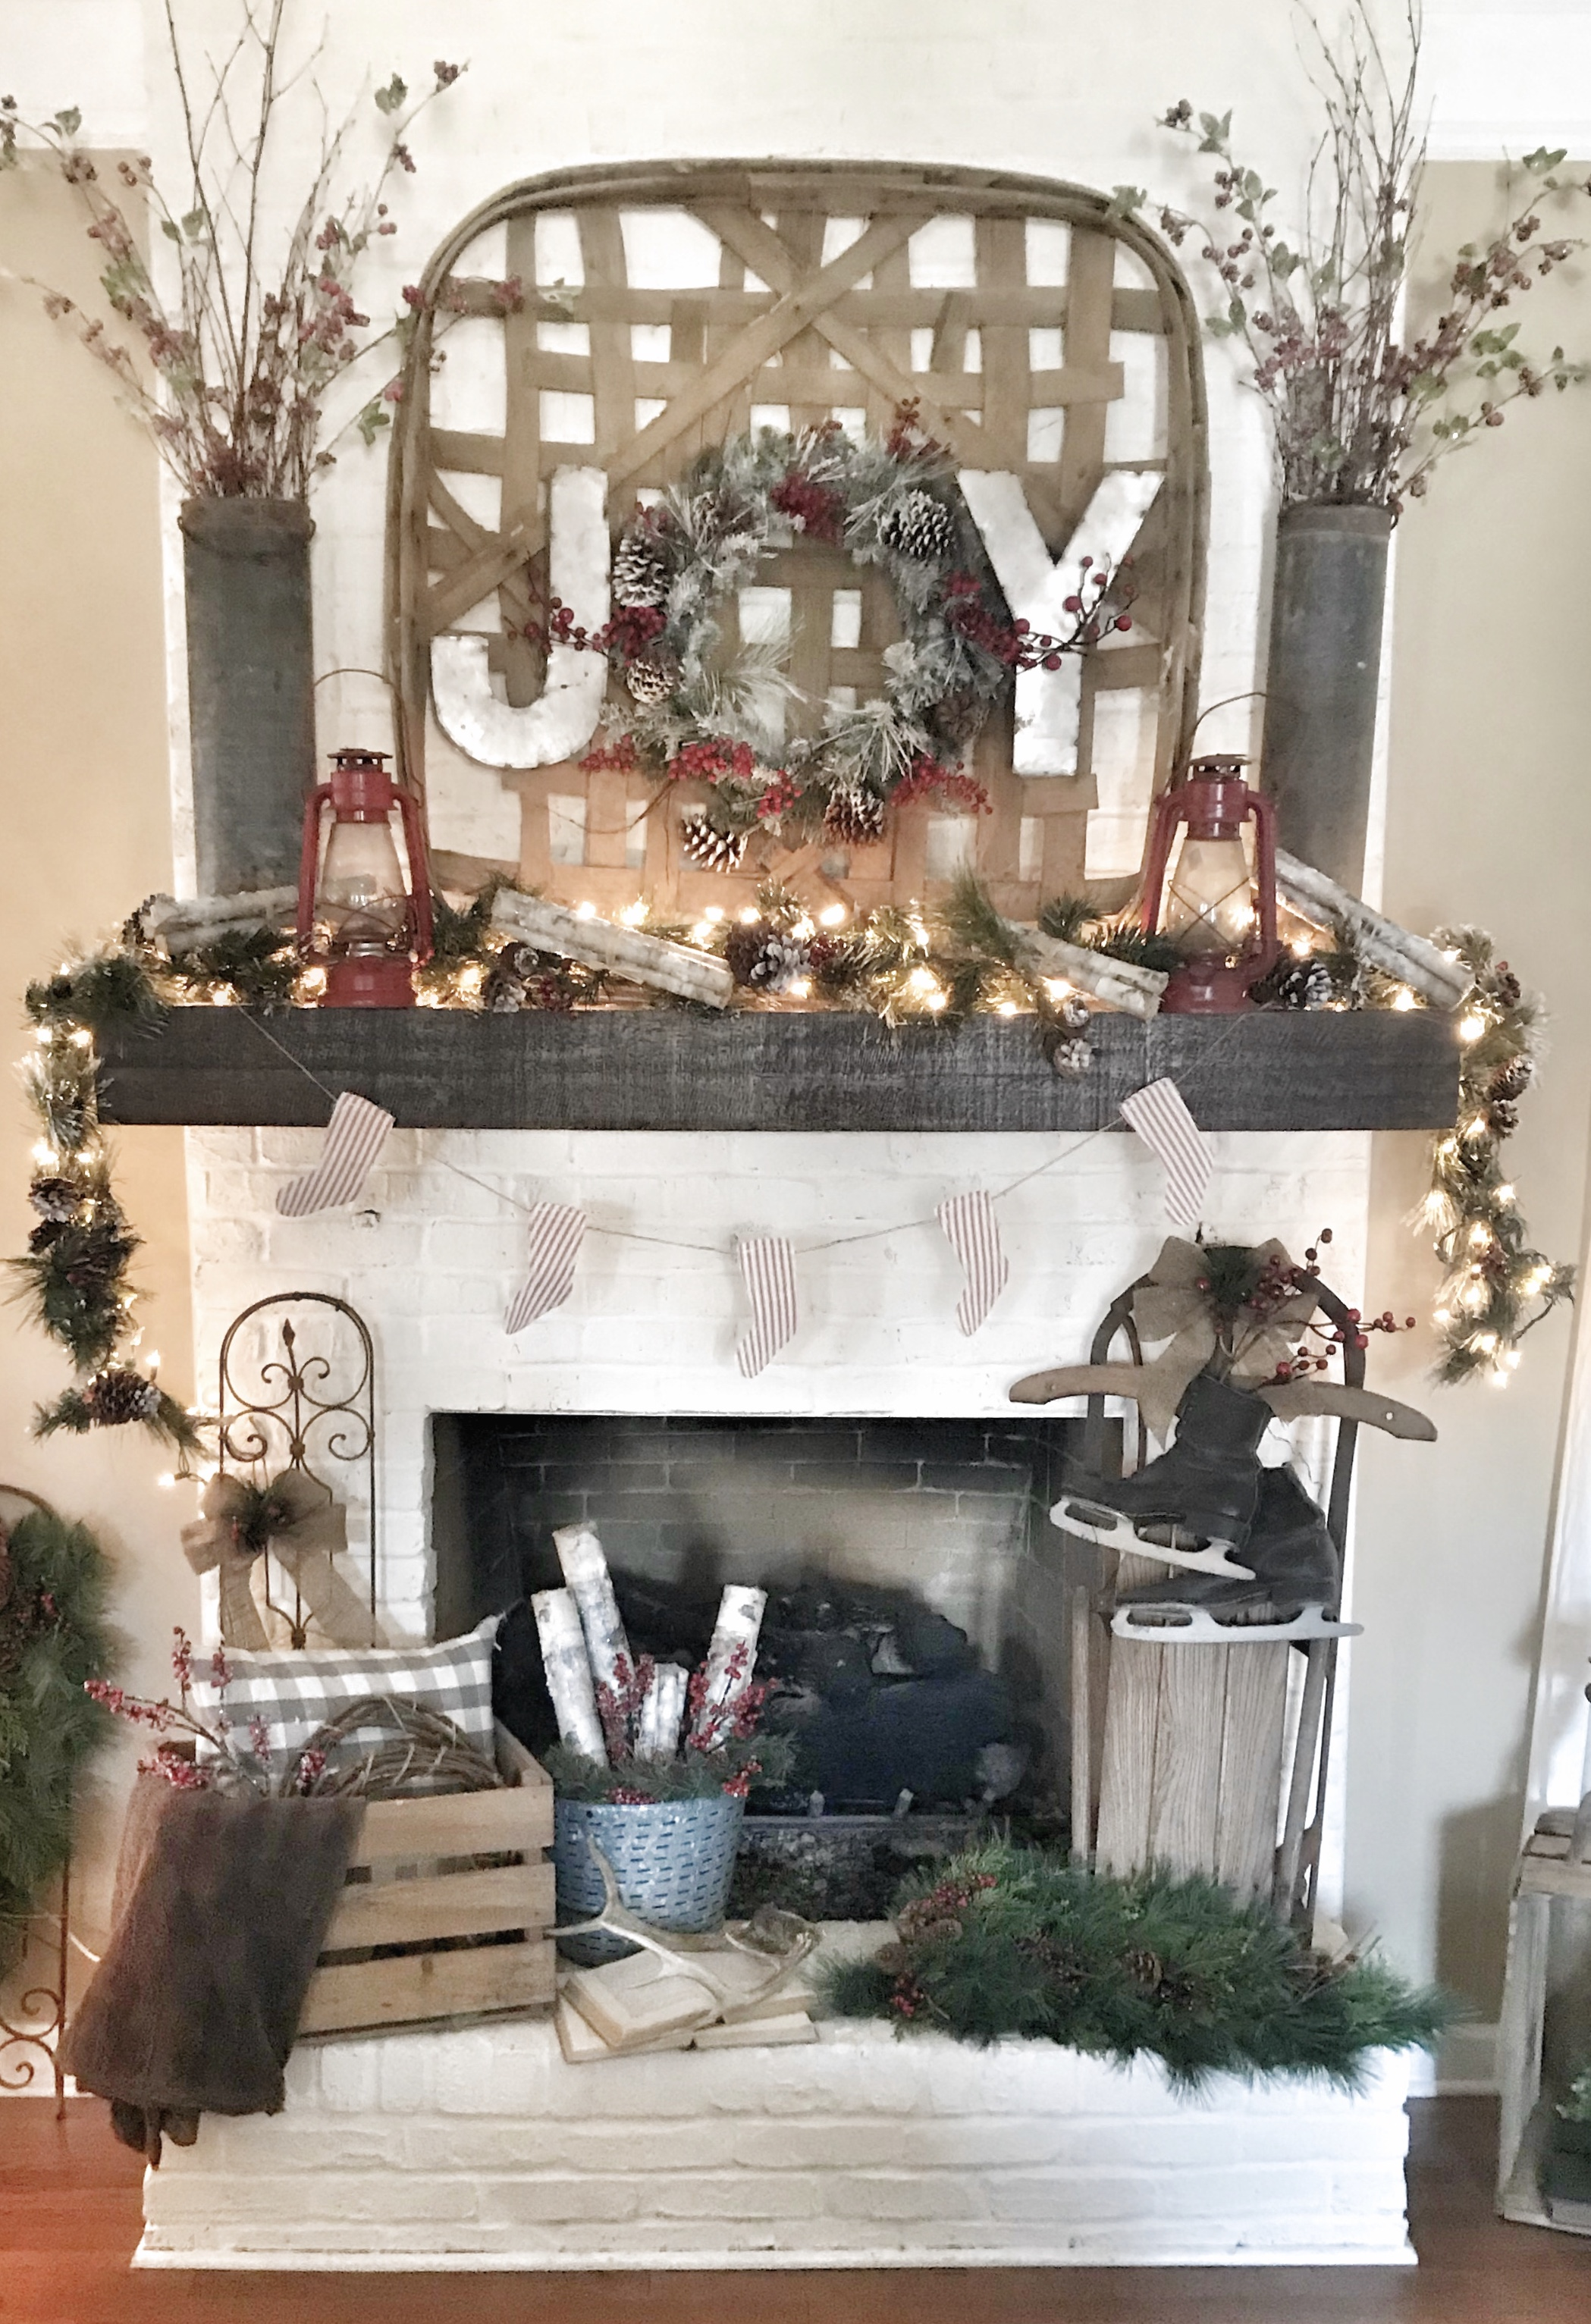 mantel decorated for Christmas with garland, lights, and joy sign